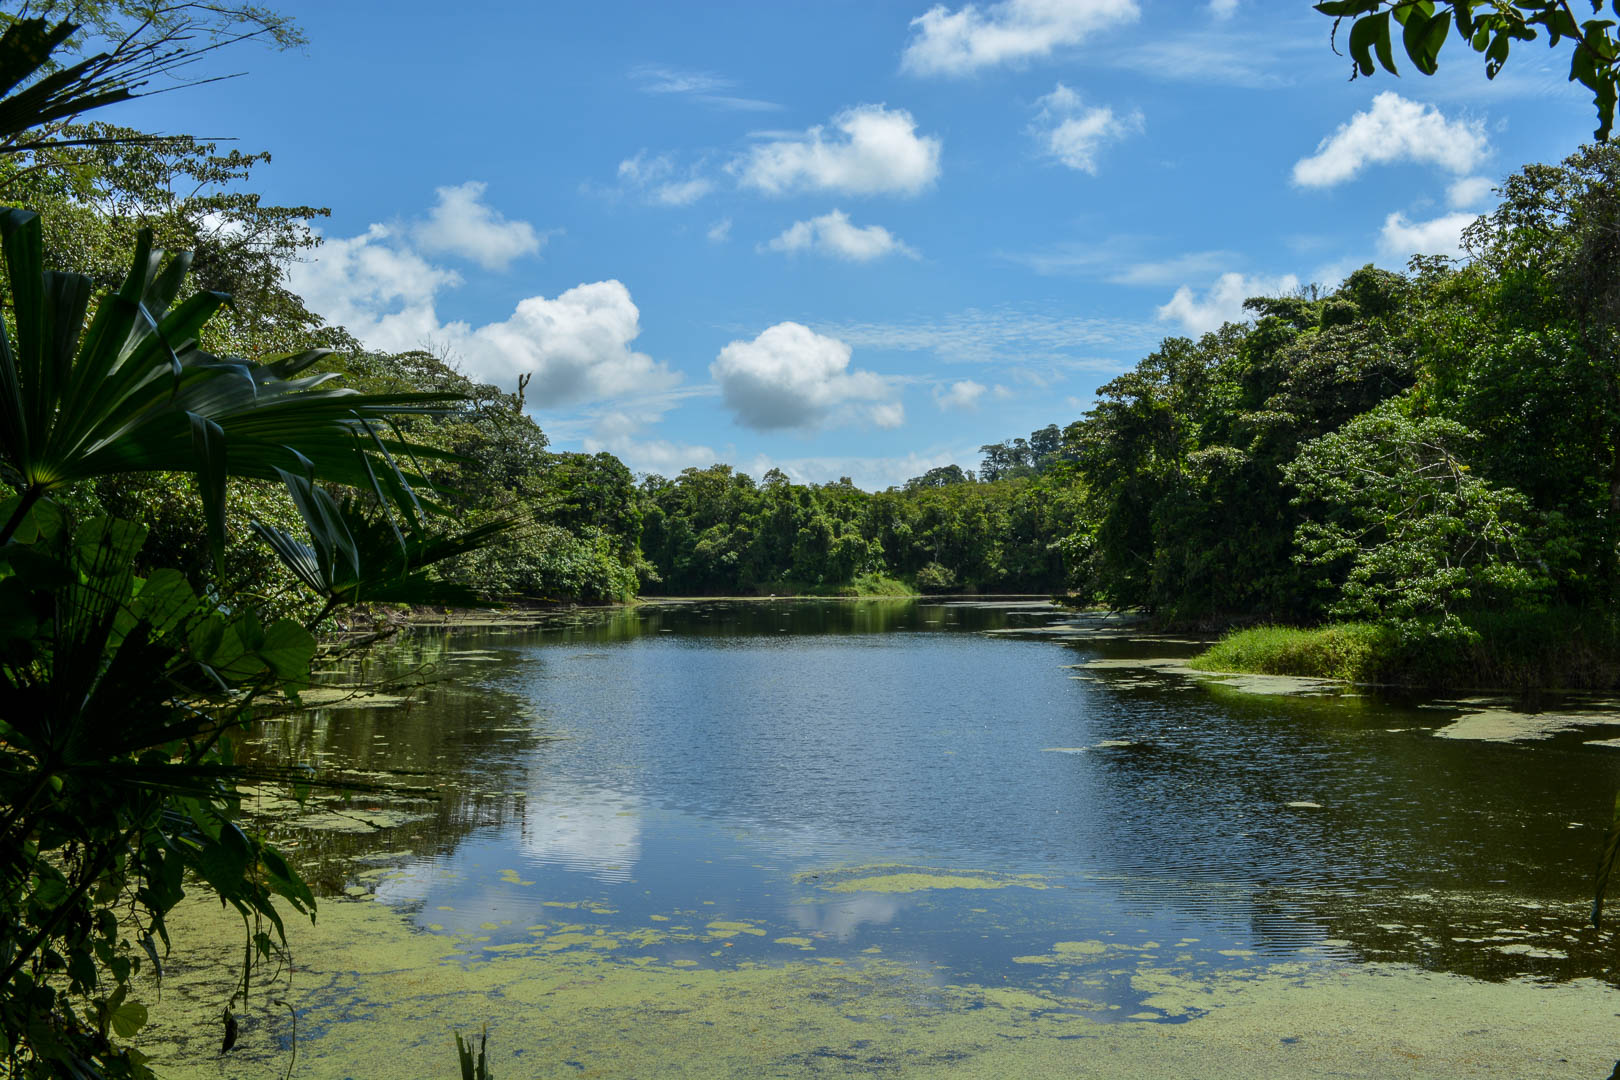 Not Arenal Lake, but a pond we came across on our hike